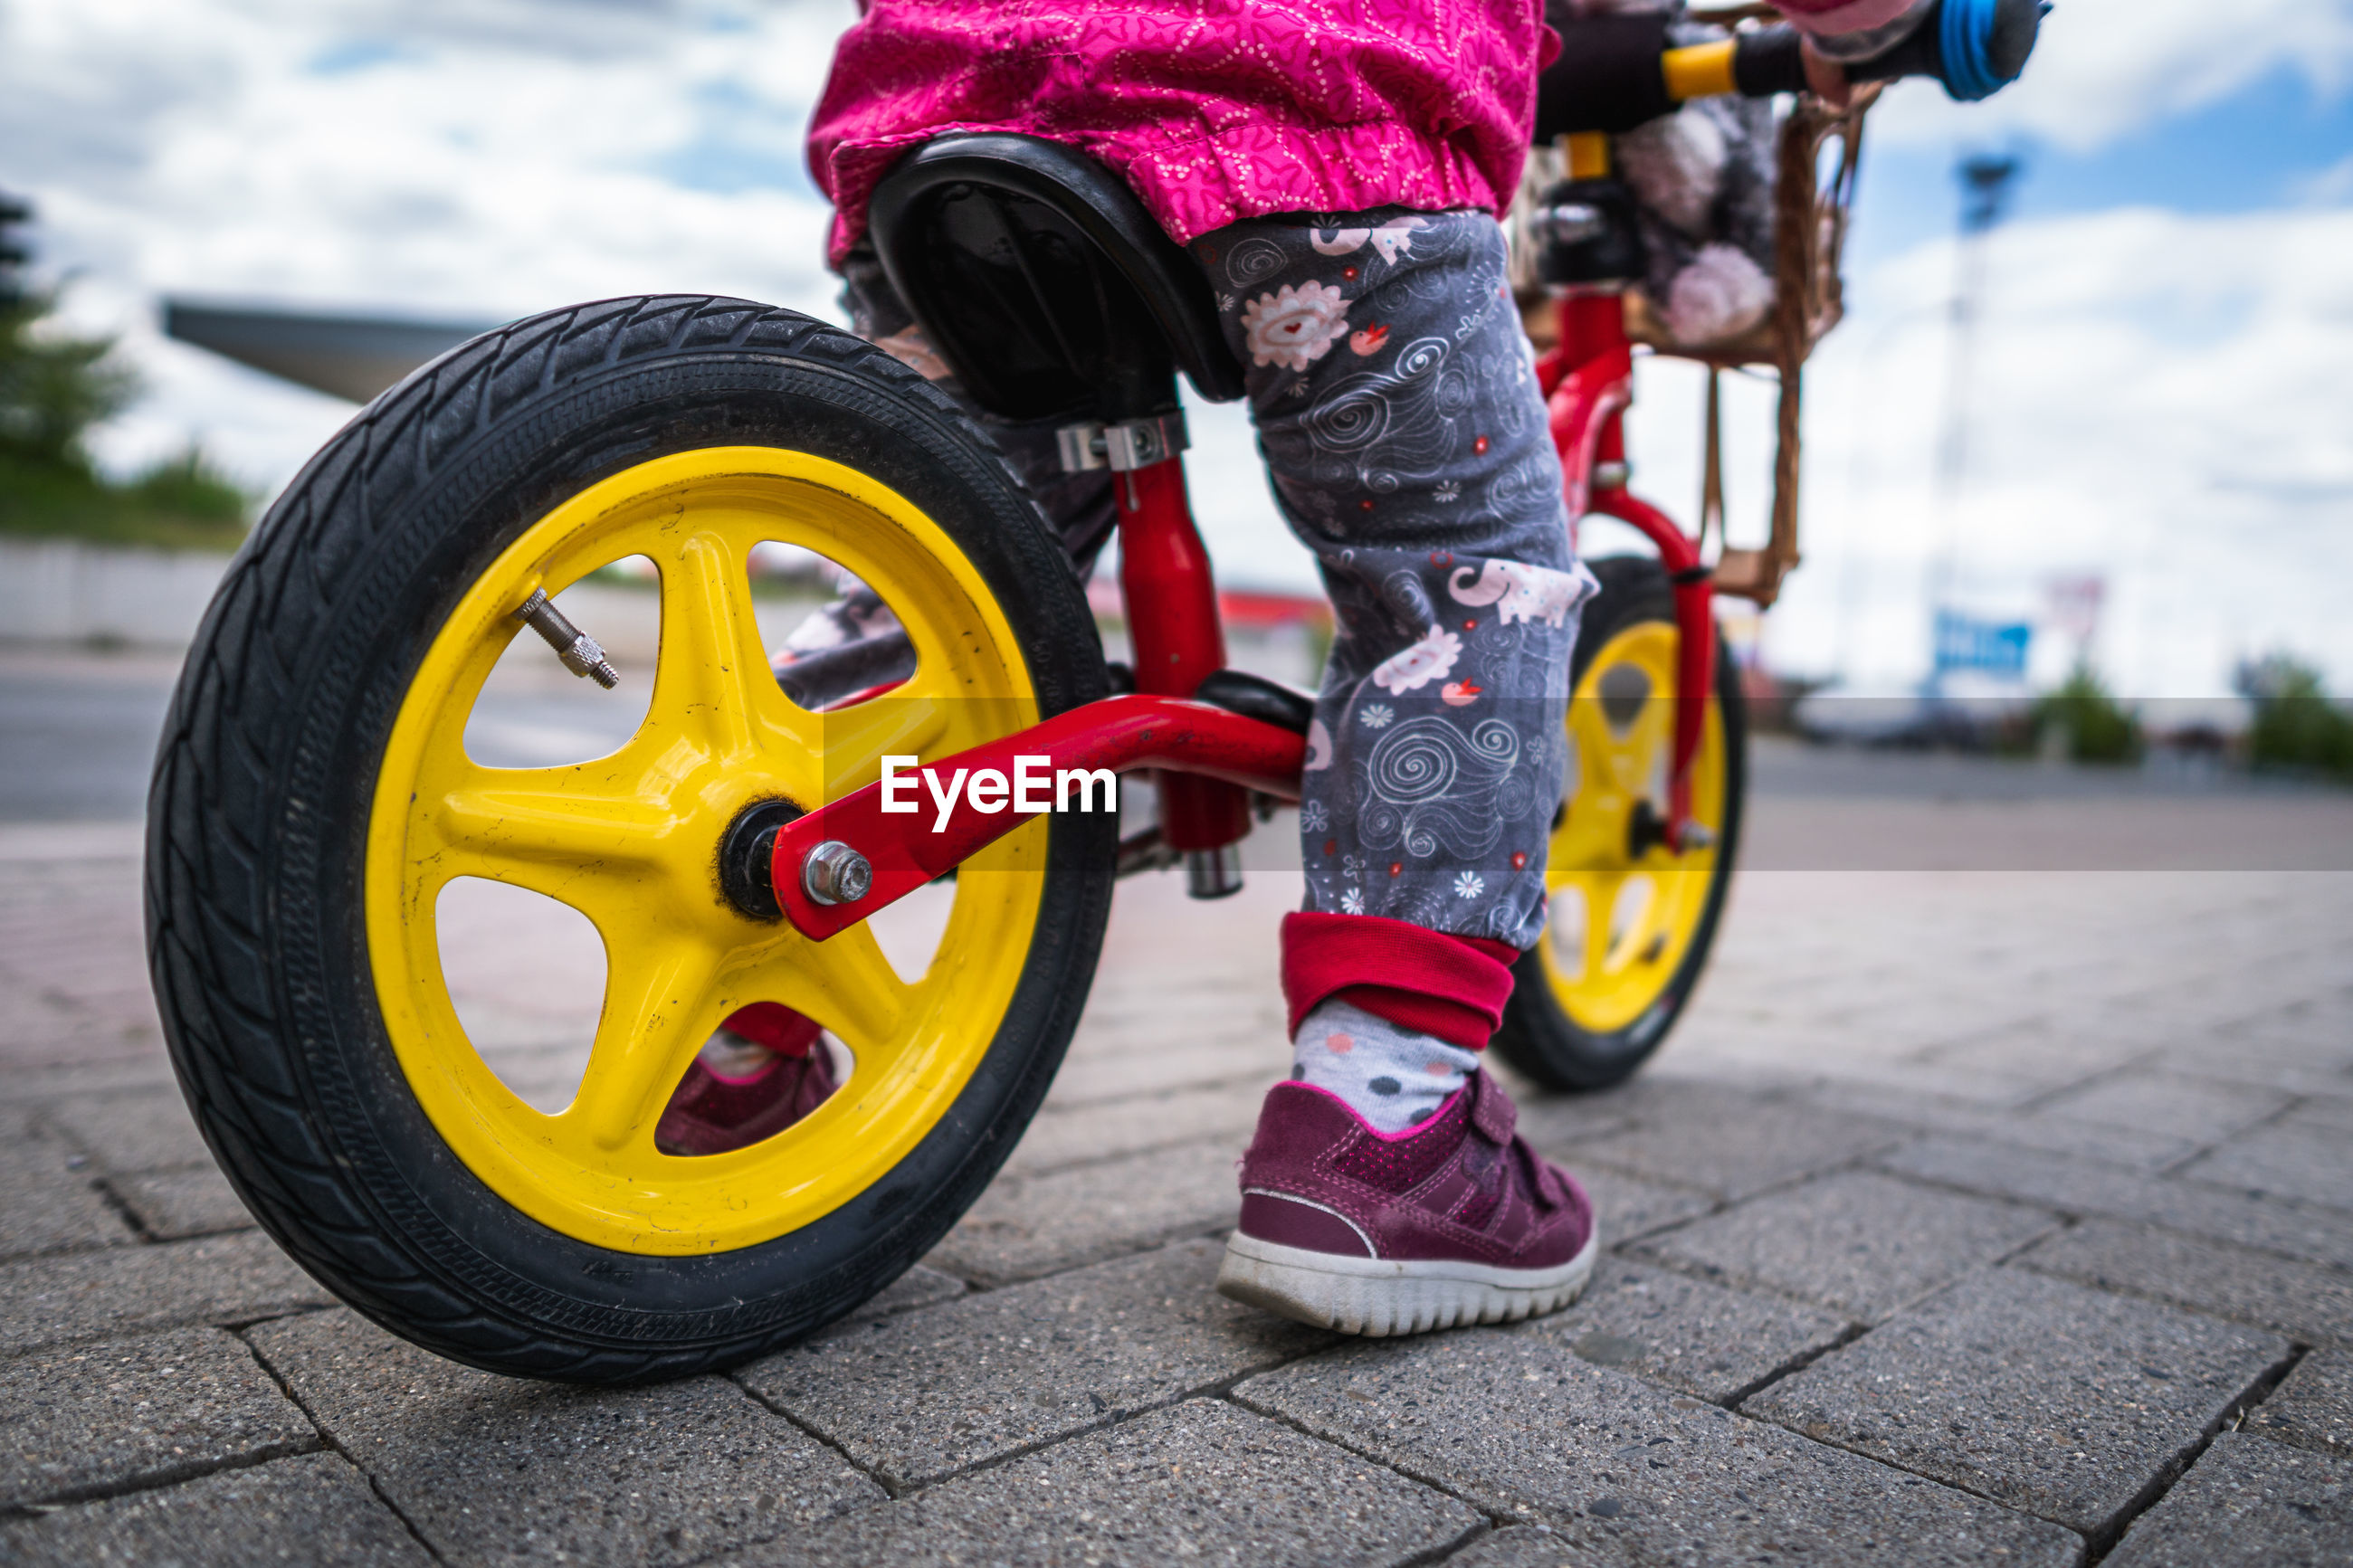 bicycle, transportation, vehicle, wheel, sports, one person, childhood, city, mode of transportation, child, helmet, cloud, street, bicycle wheel, activity, tire, day, outdoors, sports equipment, headwear, men, full length, yellow, cycling, sky, lifestyles, riding, adult, nature, leisure activity, land vehicle, footpath, pedal, motorcycle, sports helmet, person, bmx bike, motion, auto part